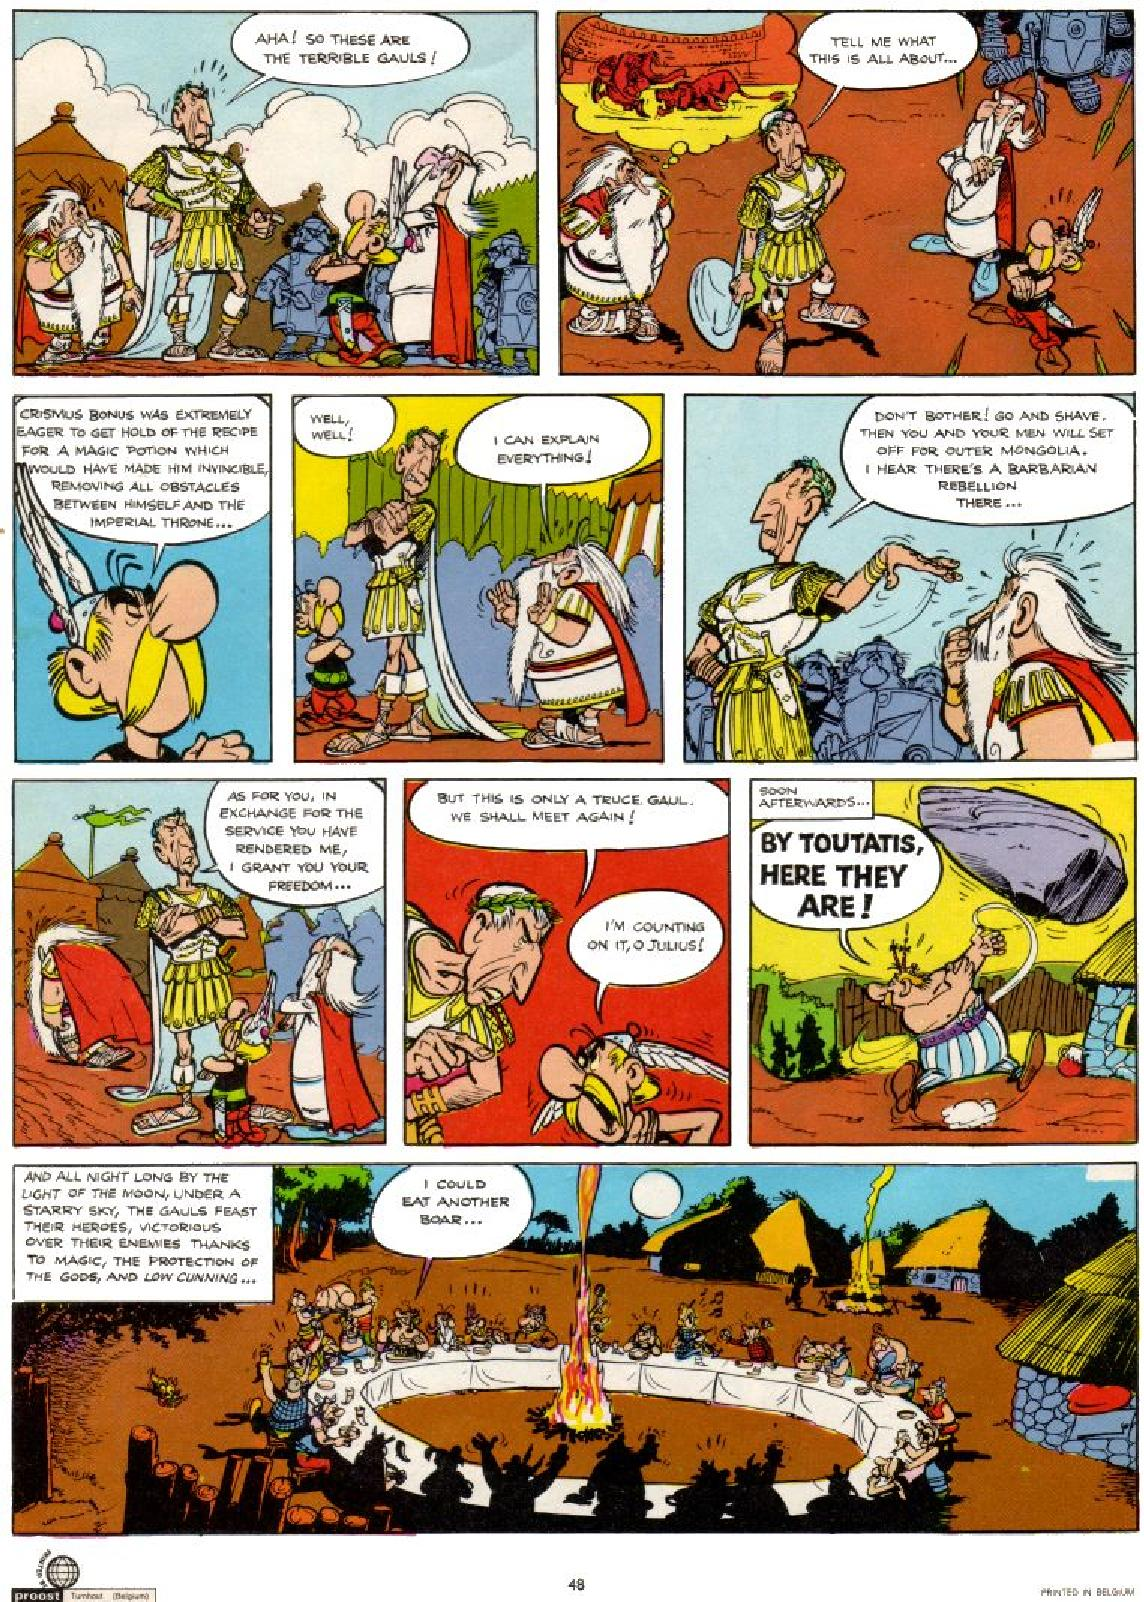 Read online Asterix comic -  Issue #1 - 48